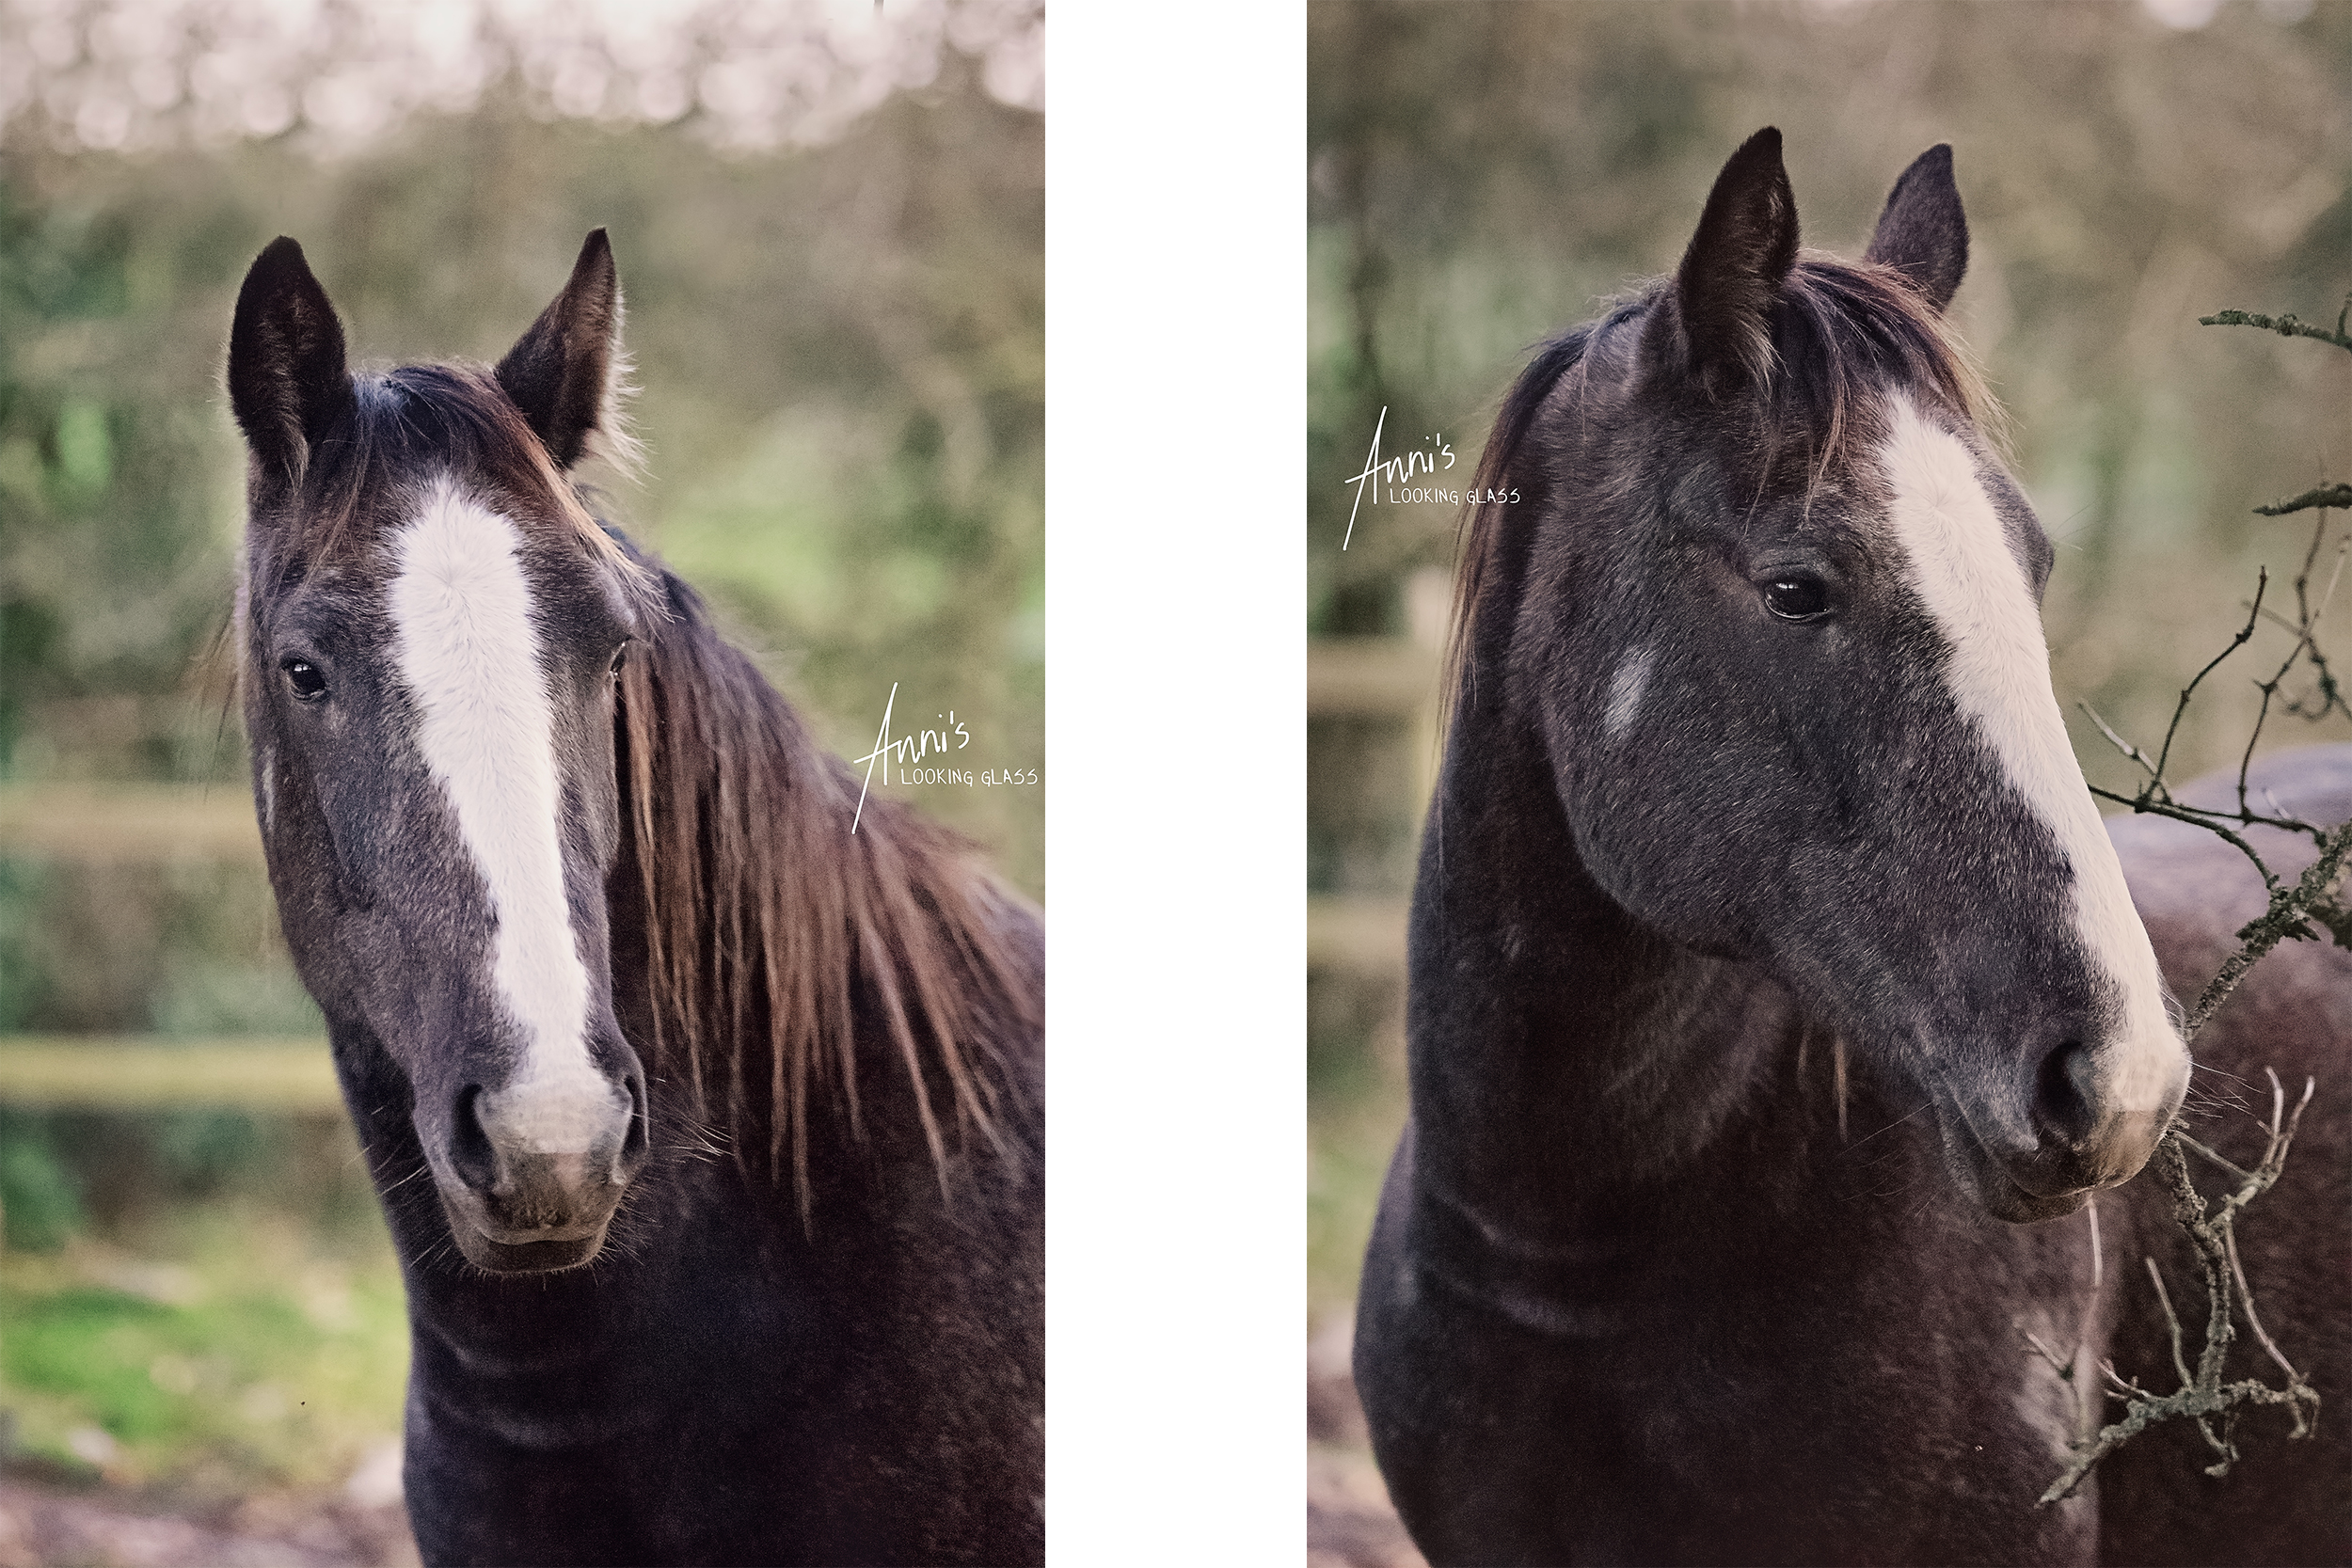 Sometimes I am so busy photographing other people and their animals that I don't capture my own little one growing up.